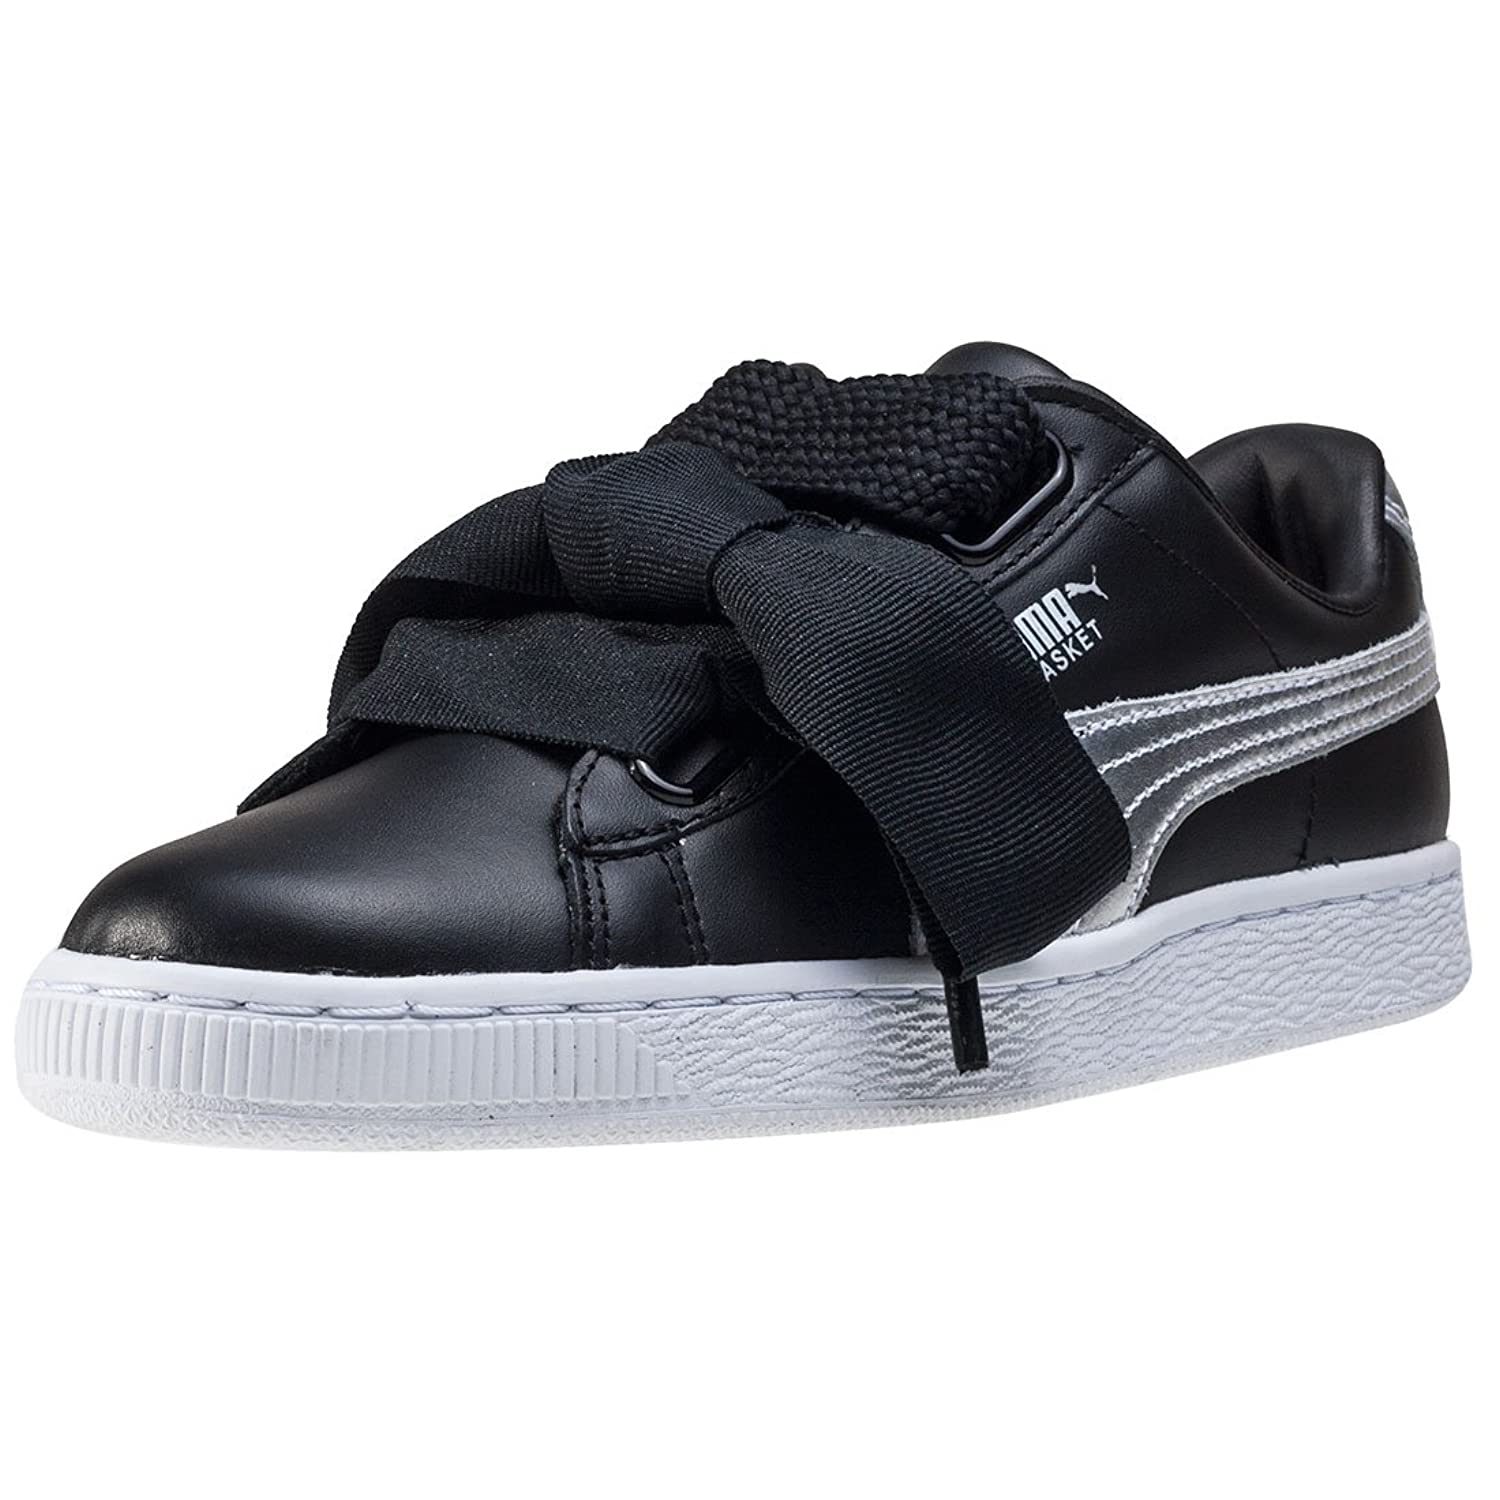 puma basket nere in pelle